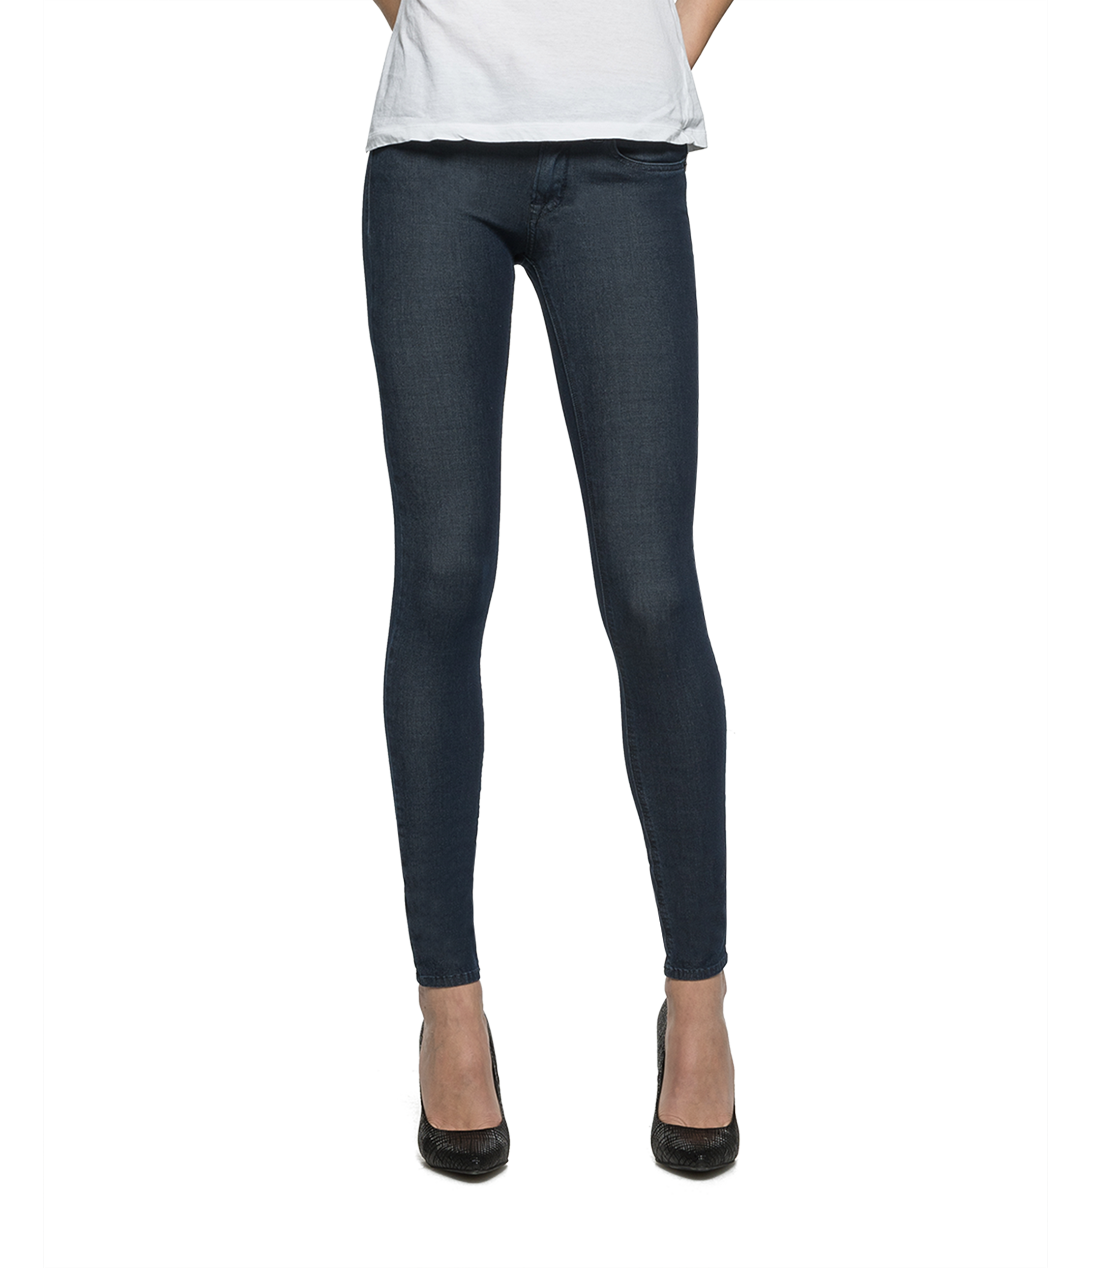 Replay Damen Skinny Jeans LUZ Hyperskin Stretch Denim dunkelblau uni